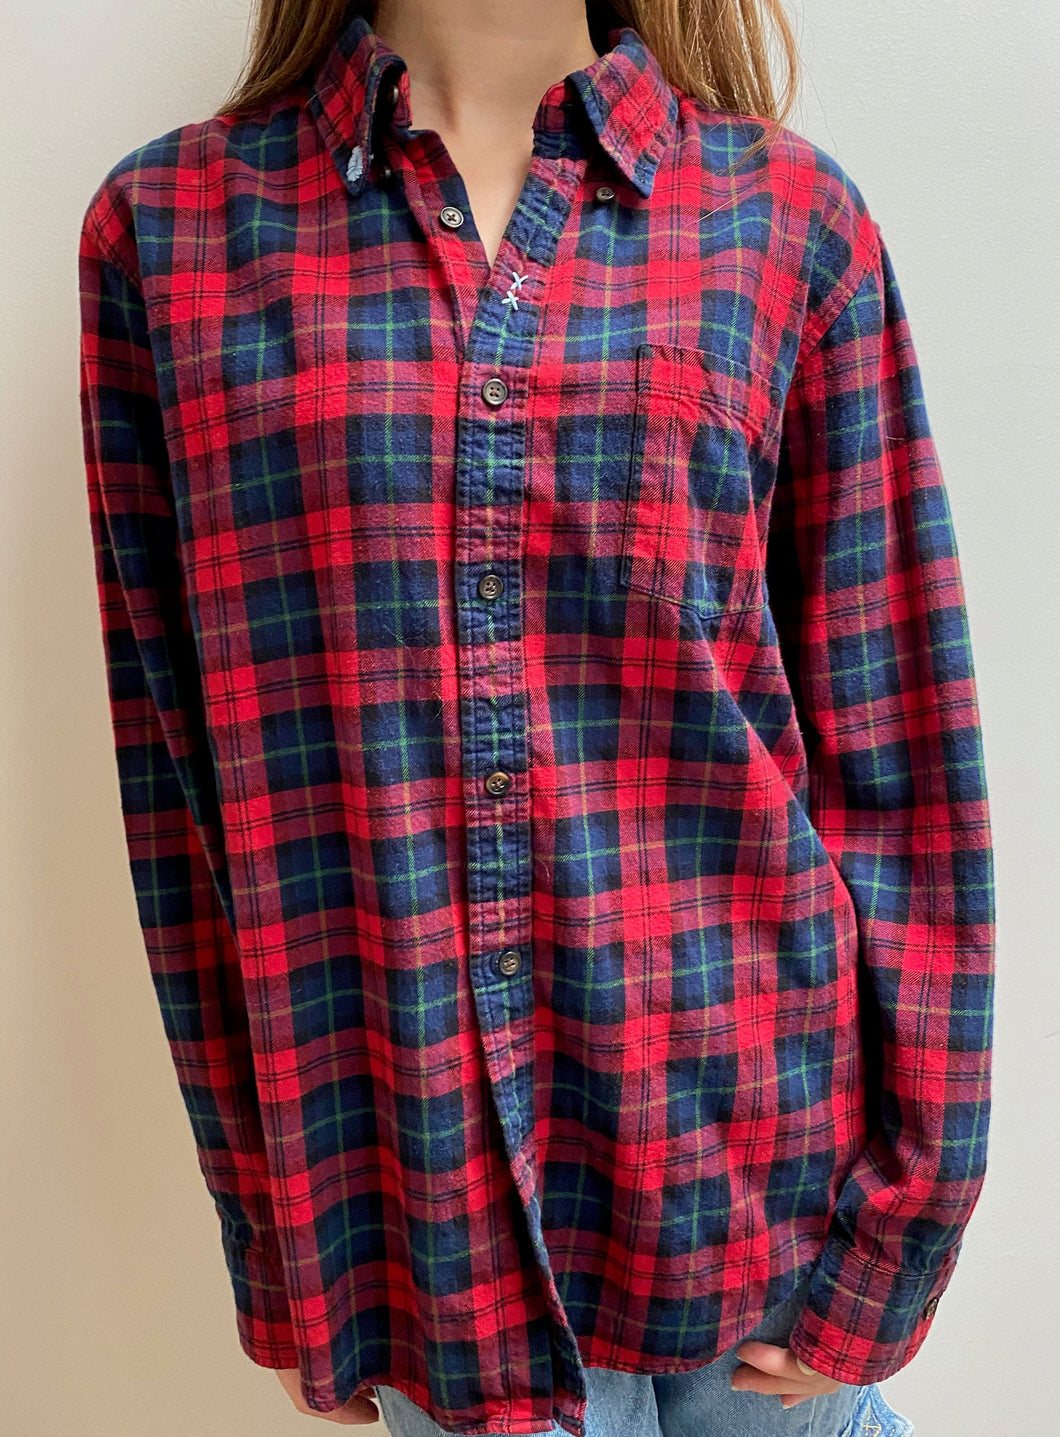 Plaid Oberst flannel shirt